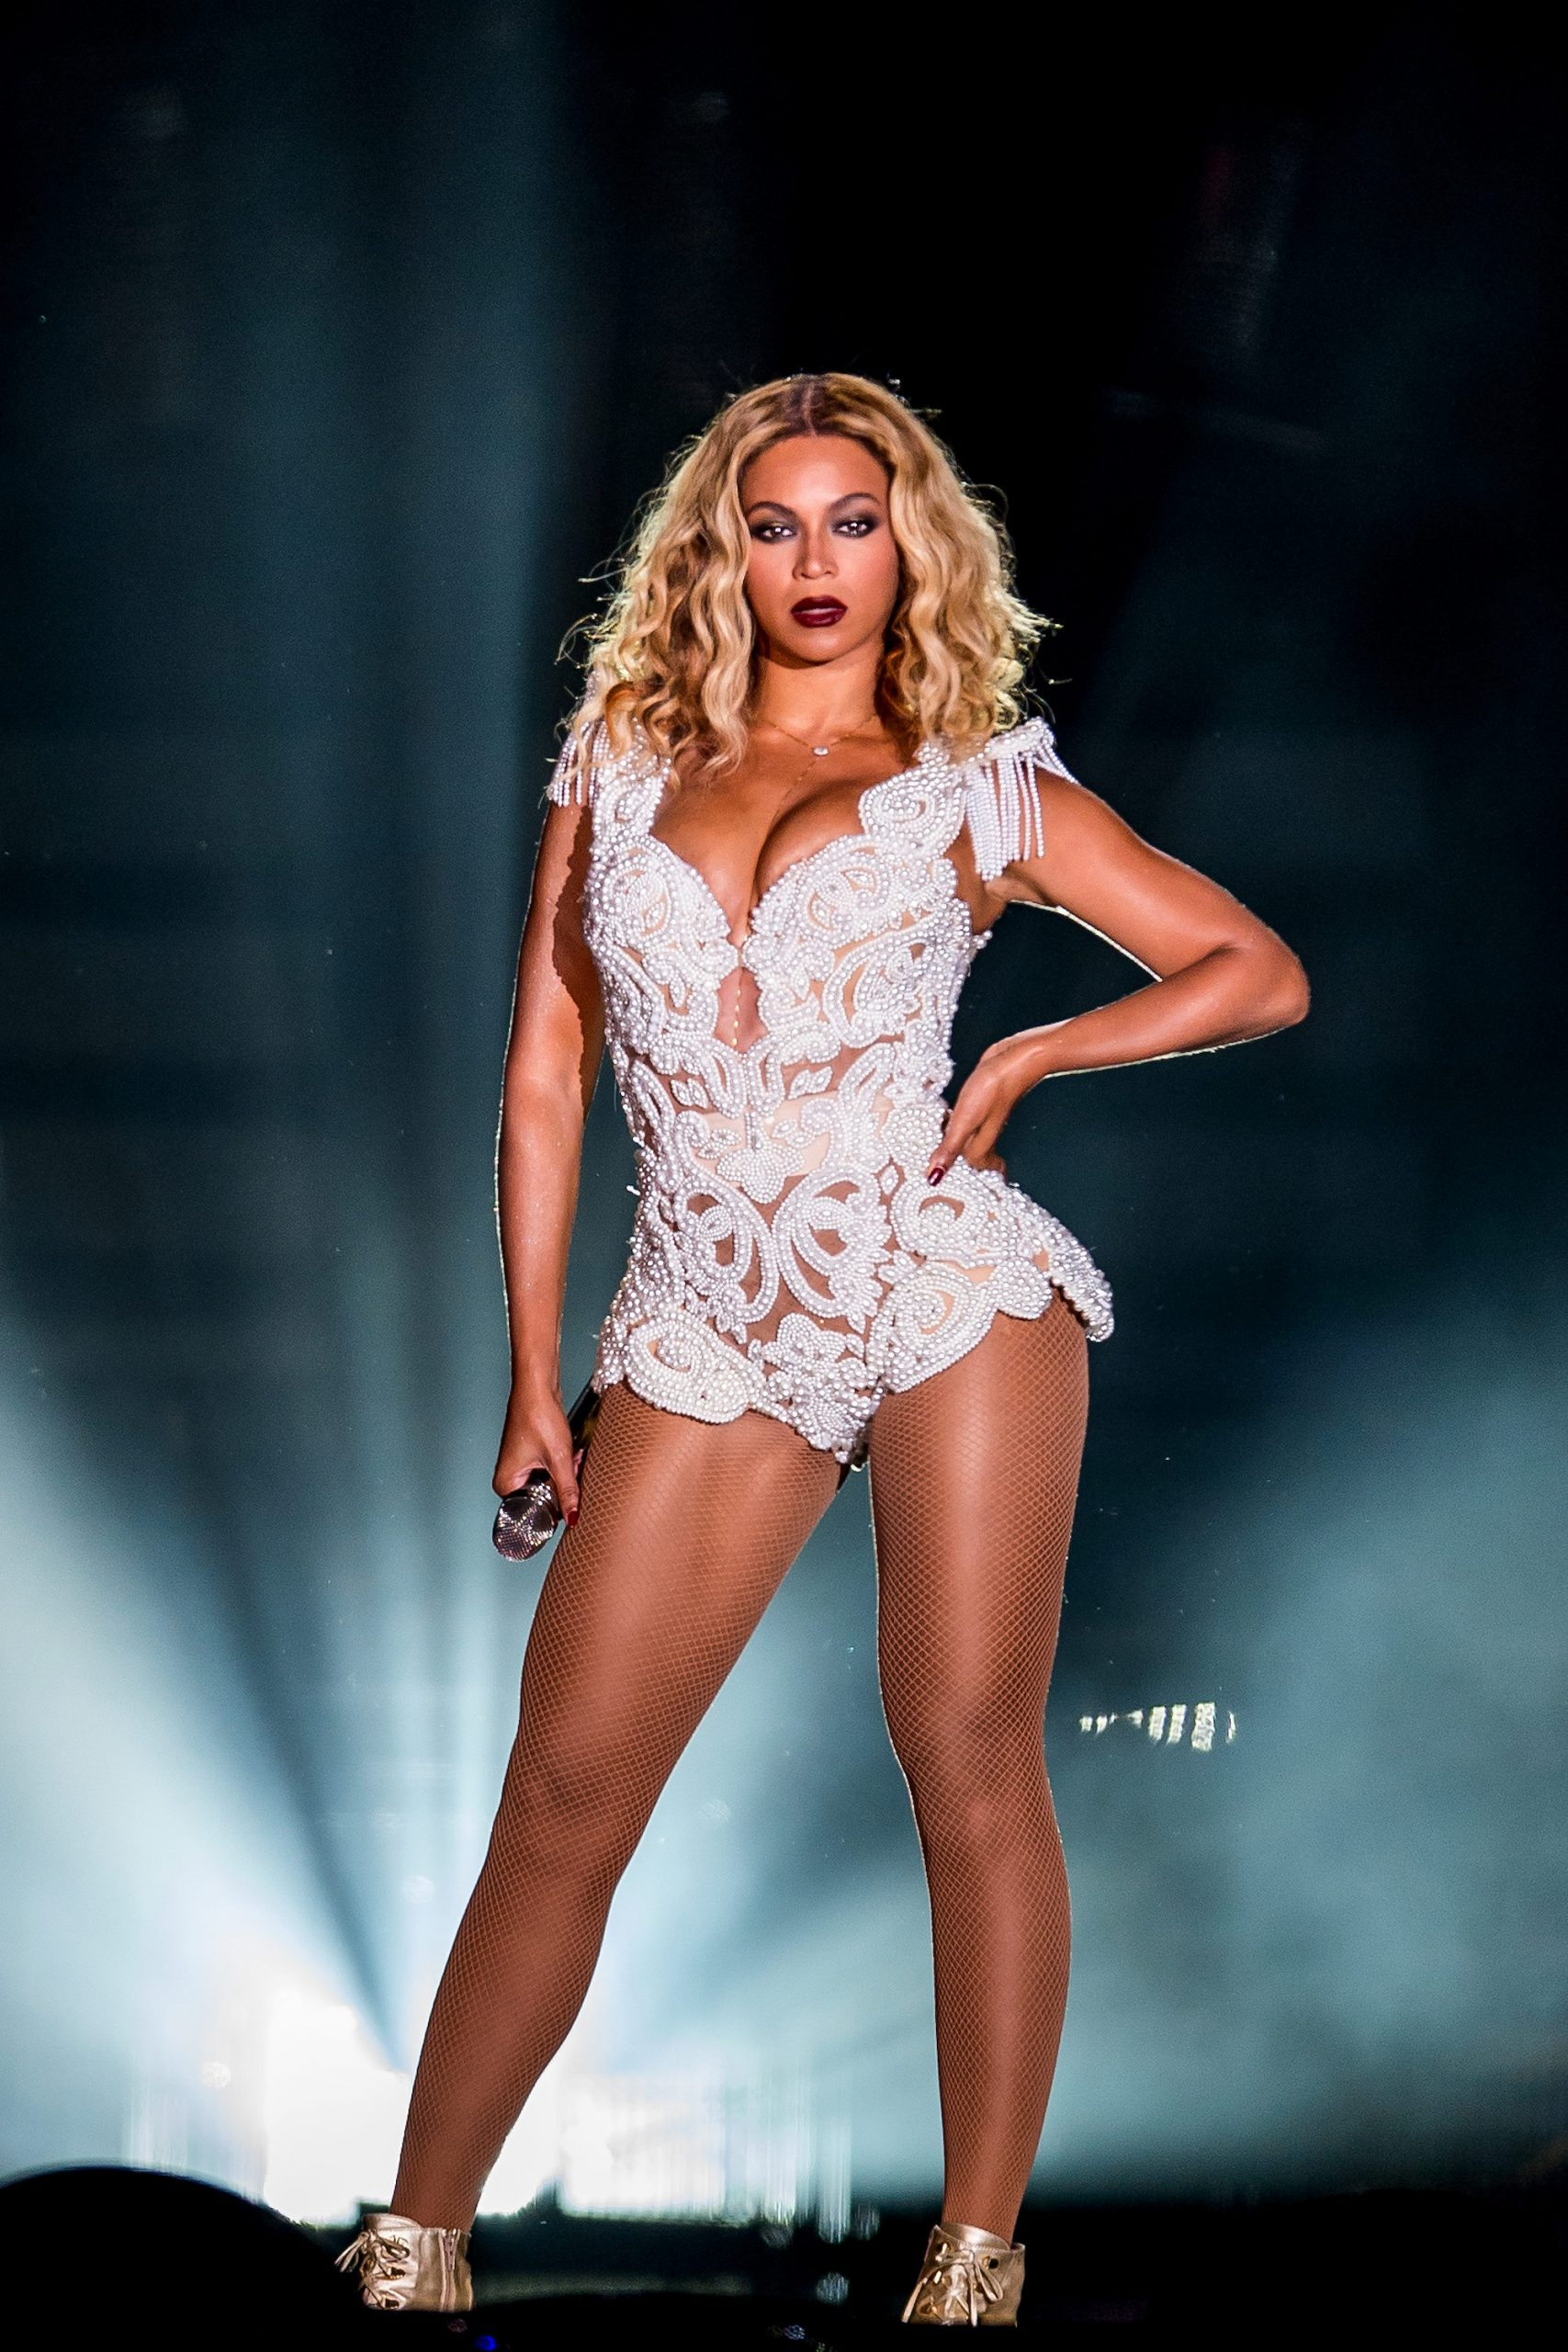 beyonce-is-the-2nd-singer-to-reach-no-1-in-each-of-the-past-4-decades